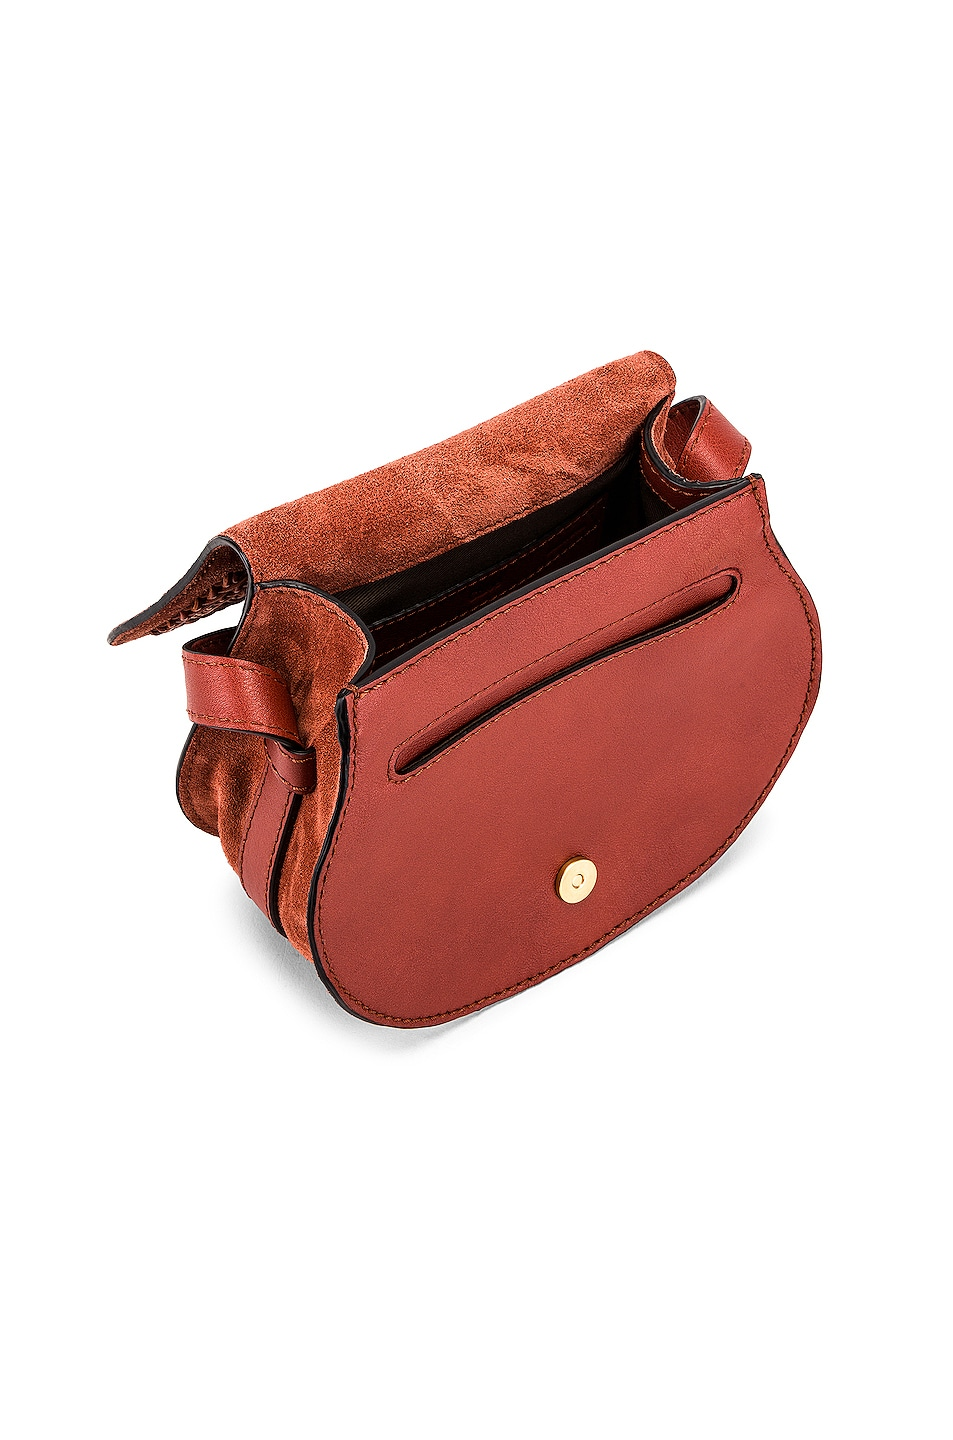 Image 5 of Chloe Small Leather Braid Marcie Satchel in Terracotta Red